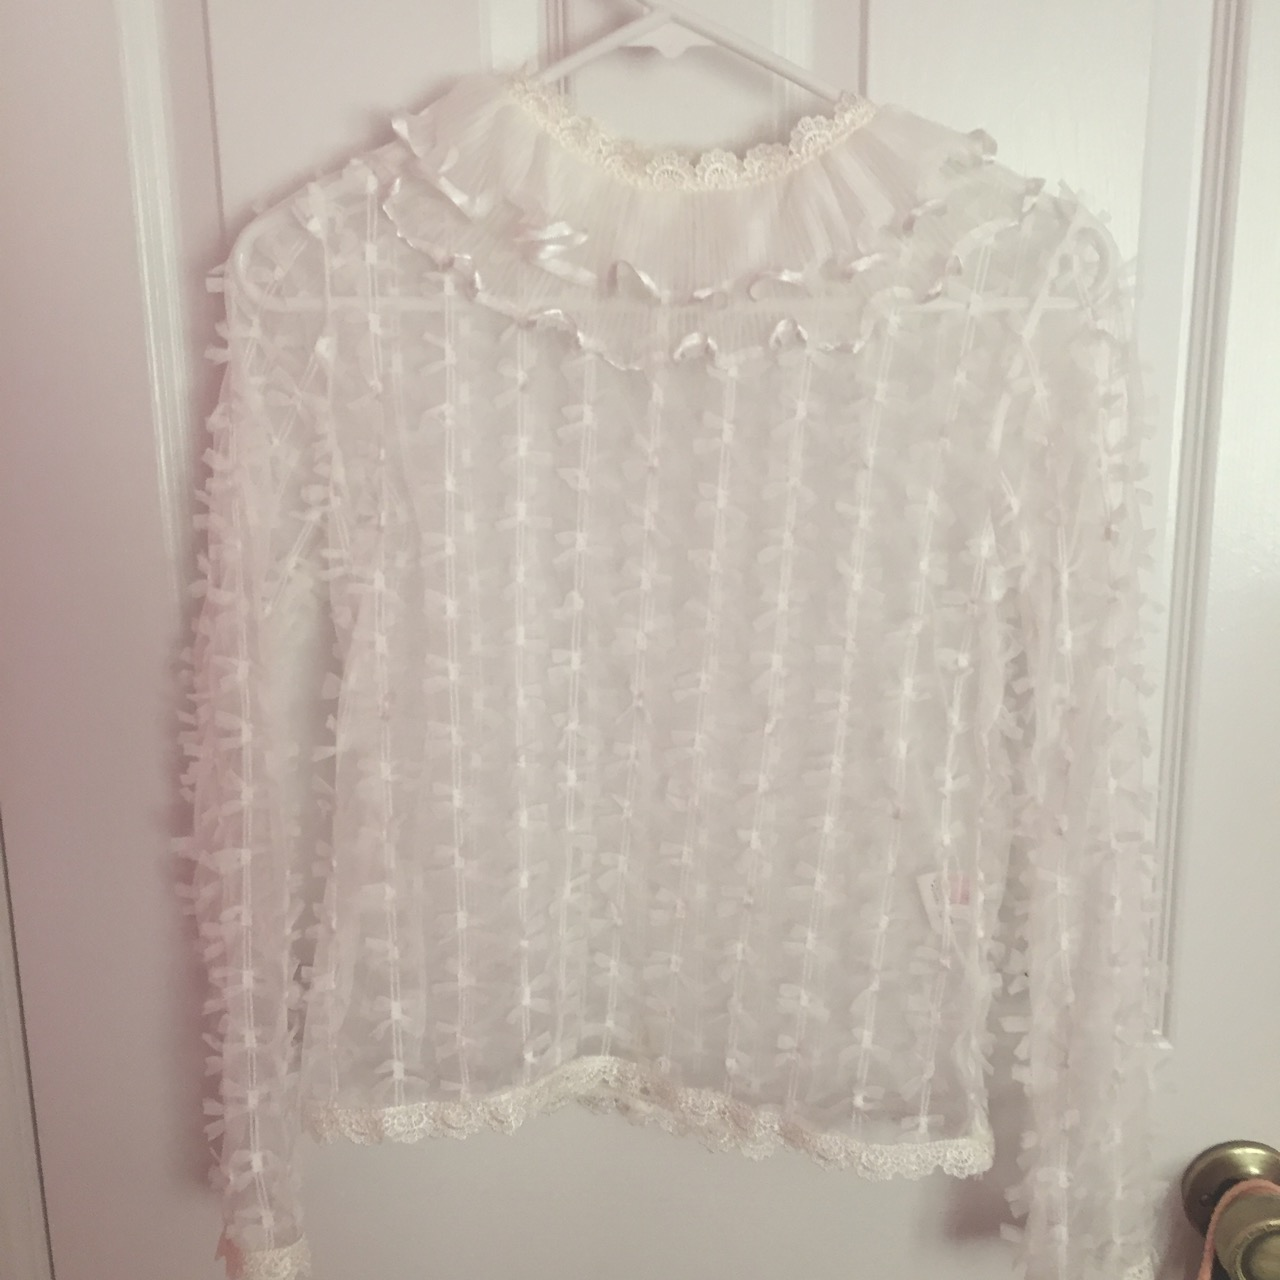 a169da752c36a Swankiss Sheer Bow   Frill Top on Storenvy